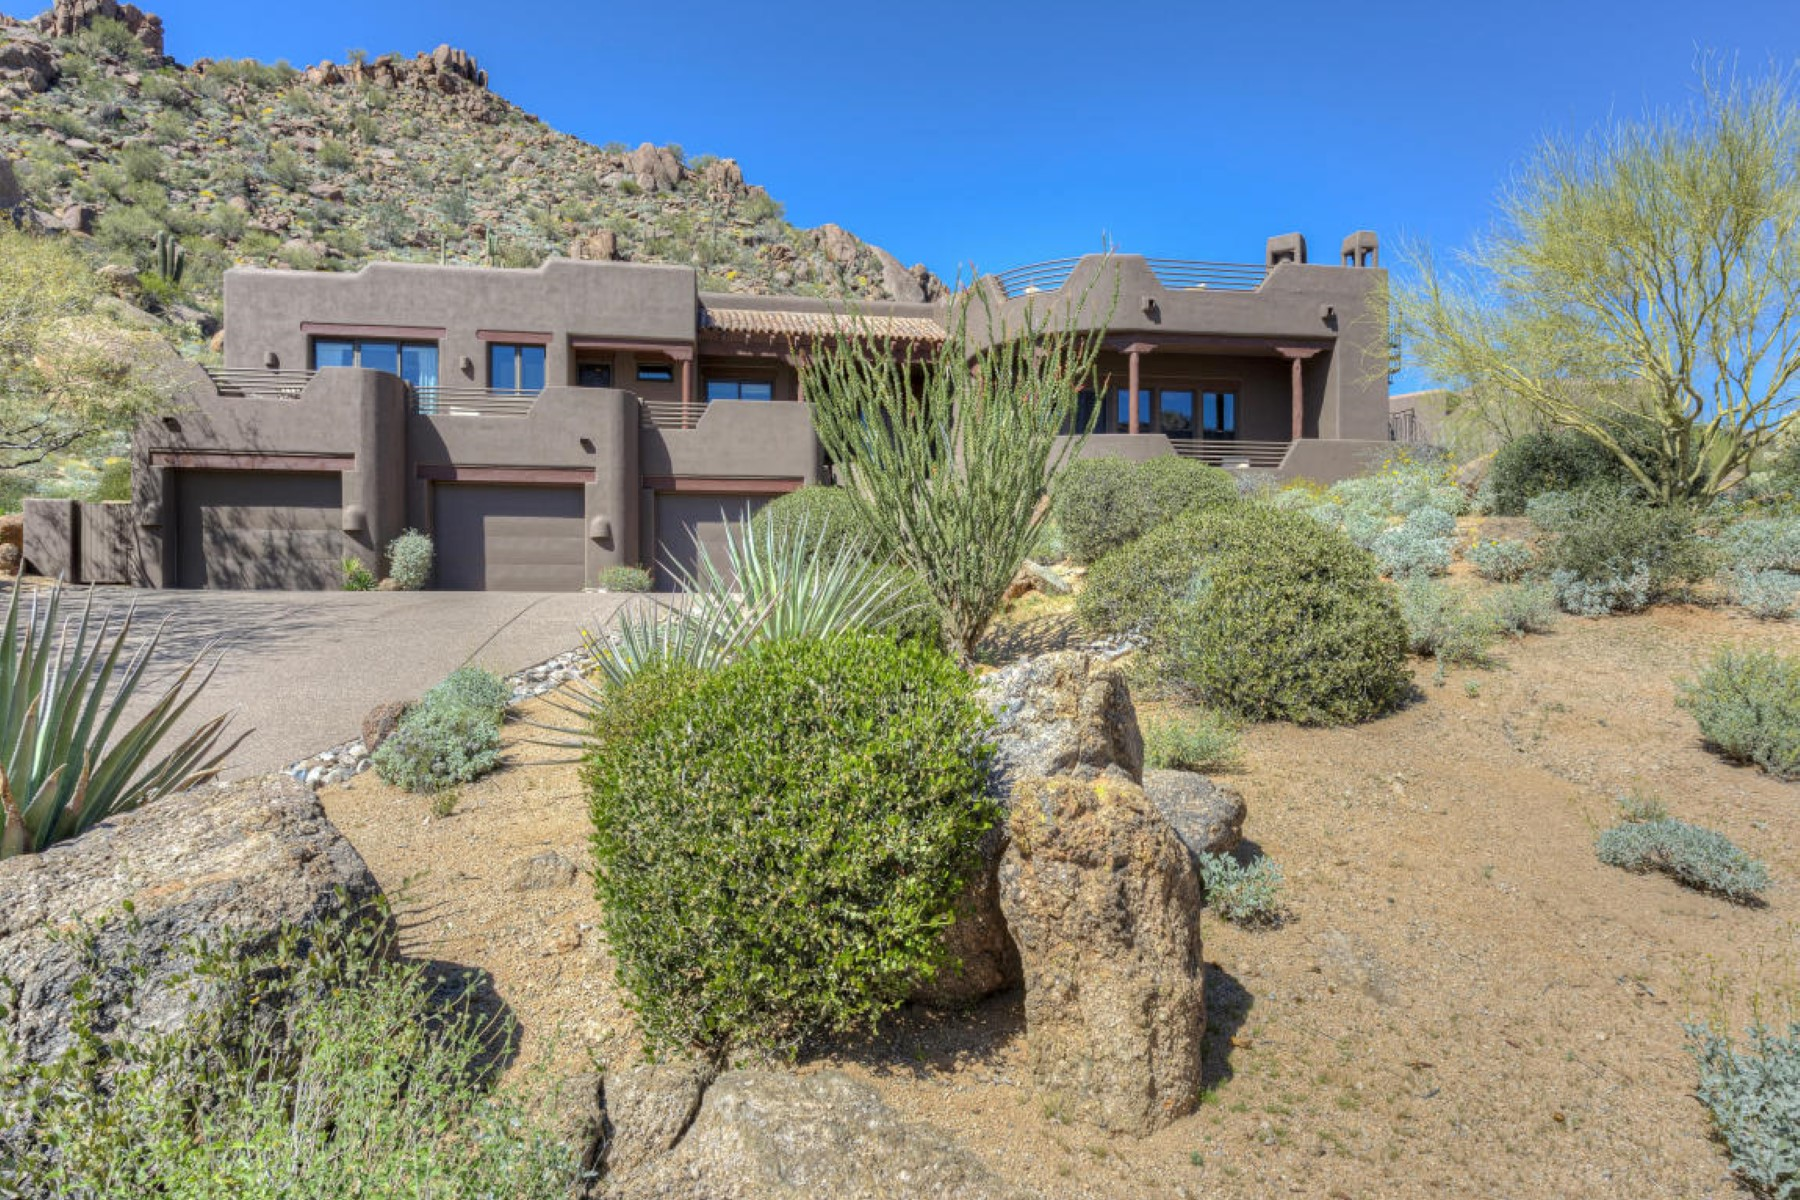 Single Family Home for Sale at Perfection found in Troon Ridge at the base of Troon Mountain 24372 N 113TH PL Scottsdale, Arizona 85255 United States